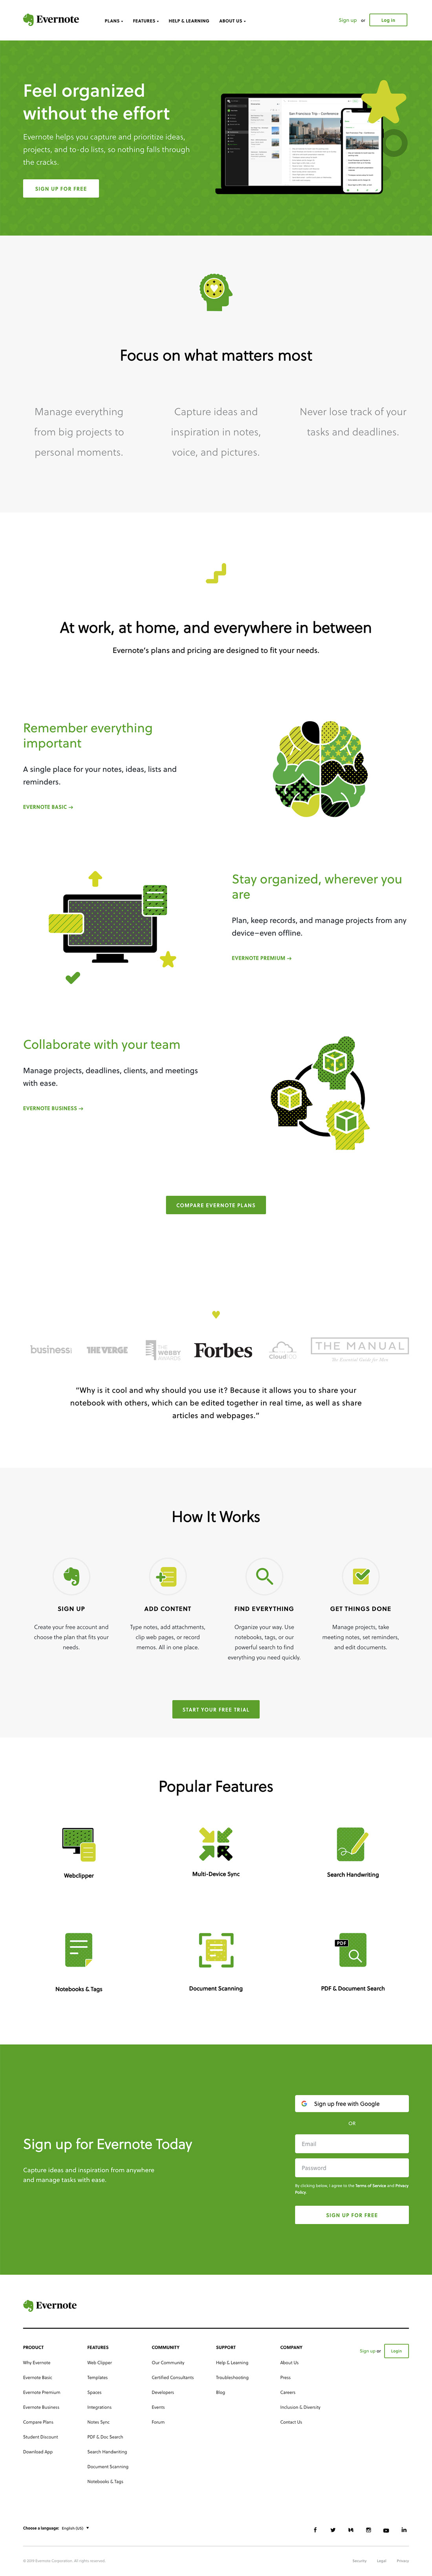 Evernote - web design example